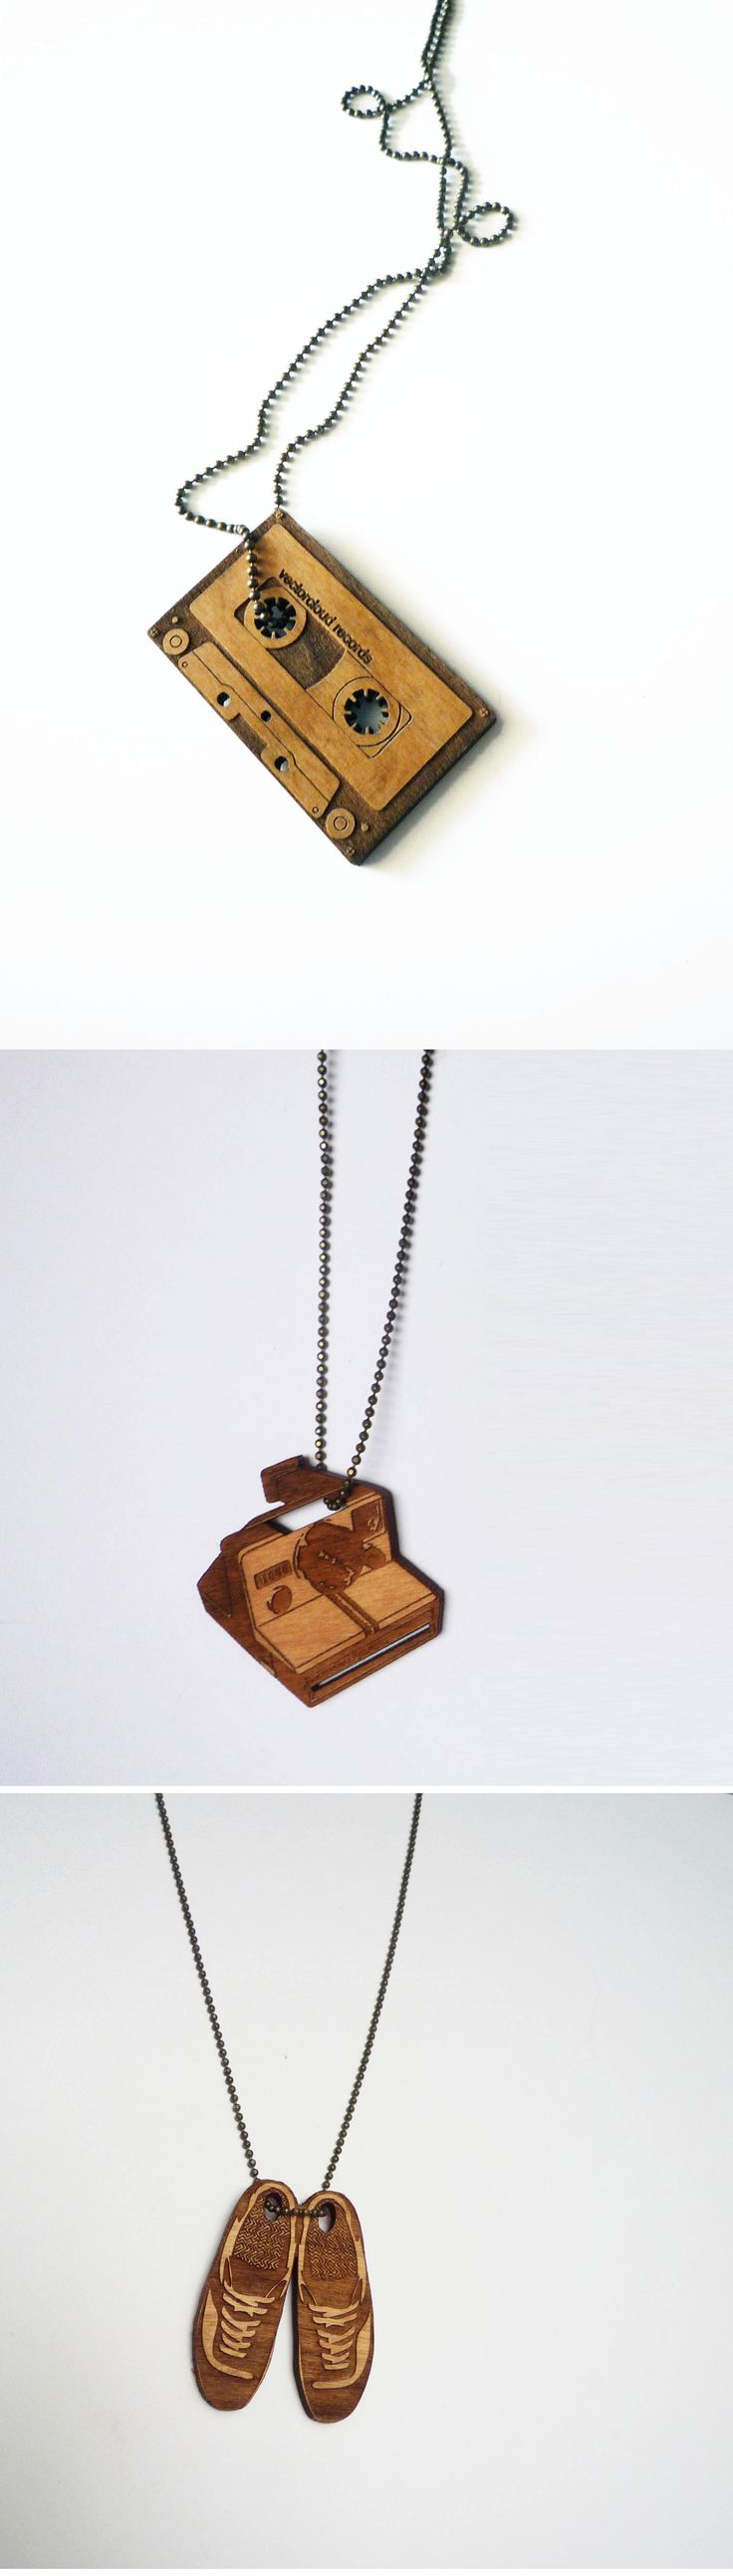 Laser cut necklace, laser engraved, wooden necklace, cassette, polaroid camera, shoes